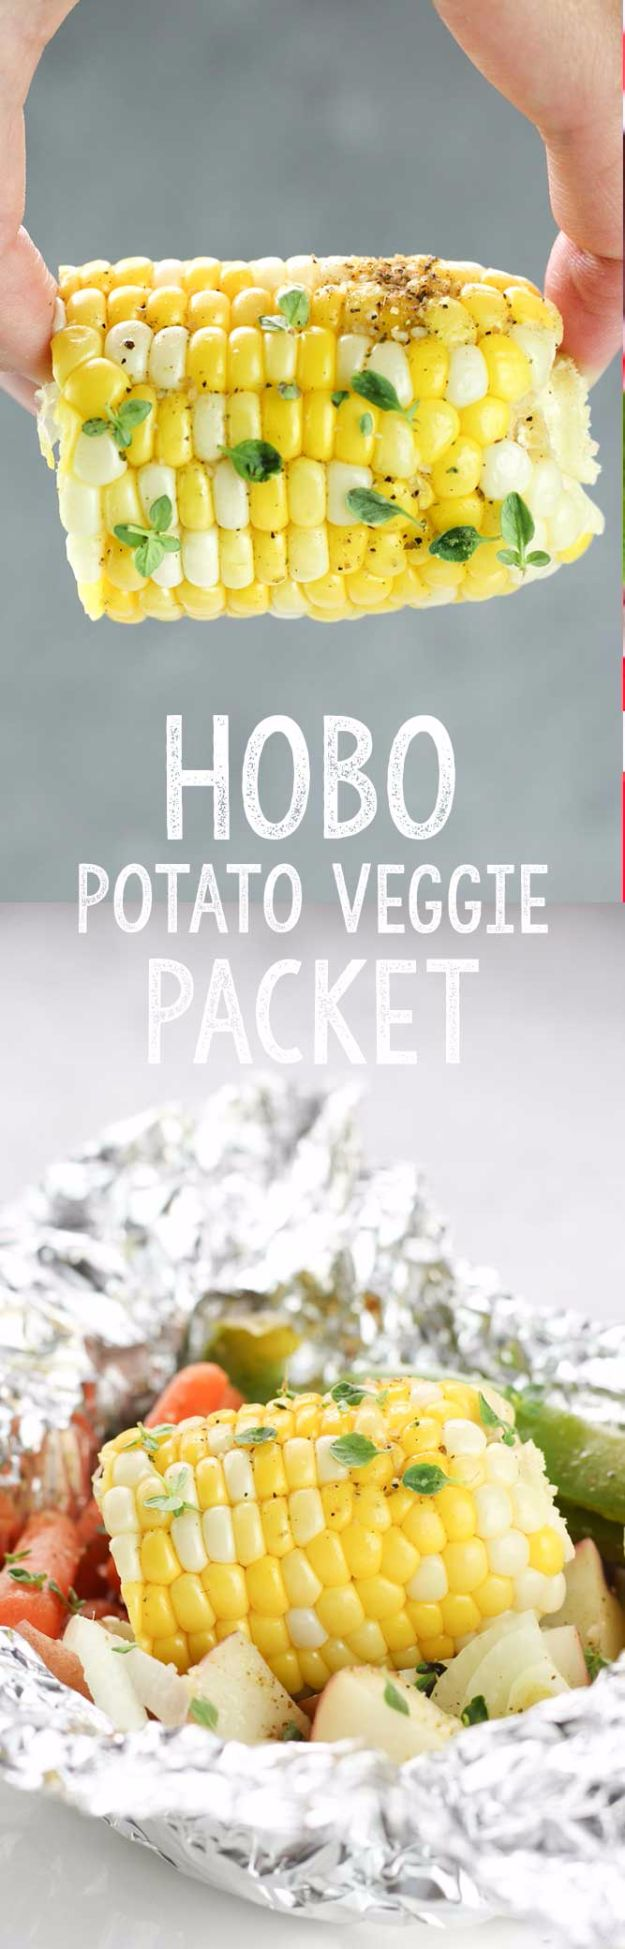 Tin Foil Camping Recipes - Hobo Potato Veggie Packets - DIY Tin Foil Dinners, Ideas for Camping Trips and On Grill. Hamburger, Chicken, Healthy, Fish, Steak , Easy Make Ahead Recipe Ideas for the Campfire. Breakfast, Lunch, Dinner and Dessert, Snacks all Wrapped in Foil for Quick Cooking #camping #tinfoilrecipes #campingrecipes